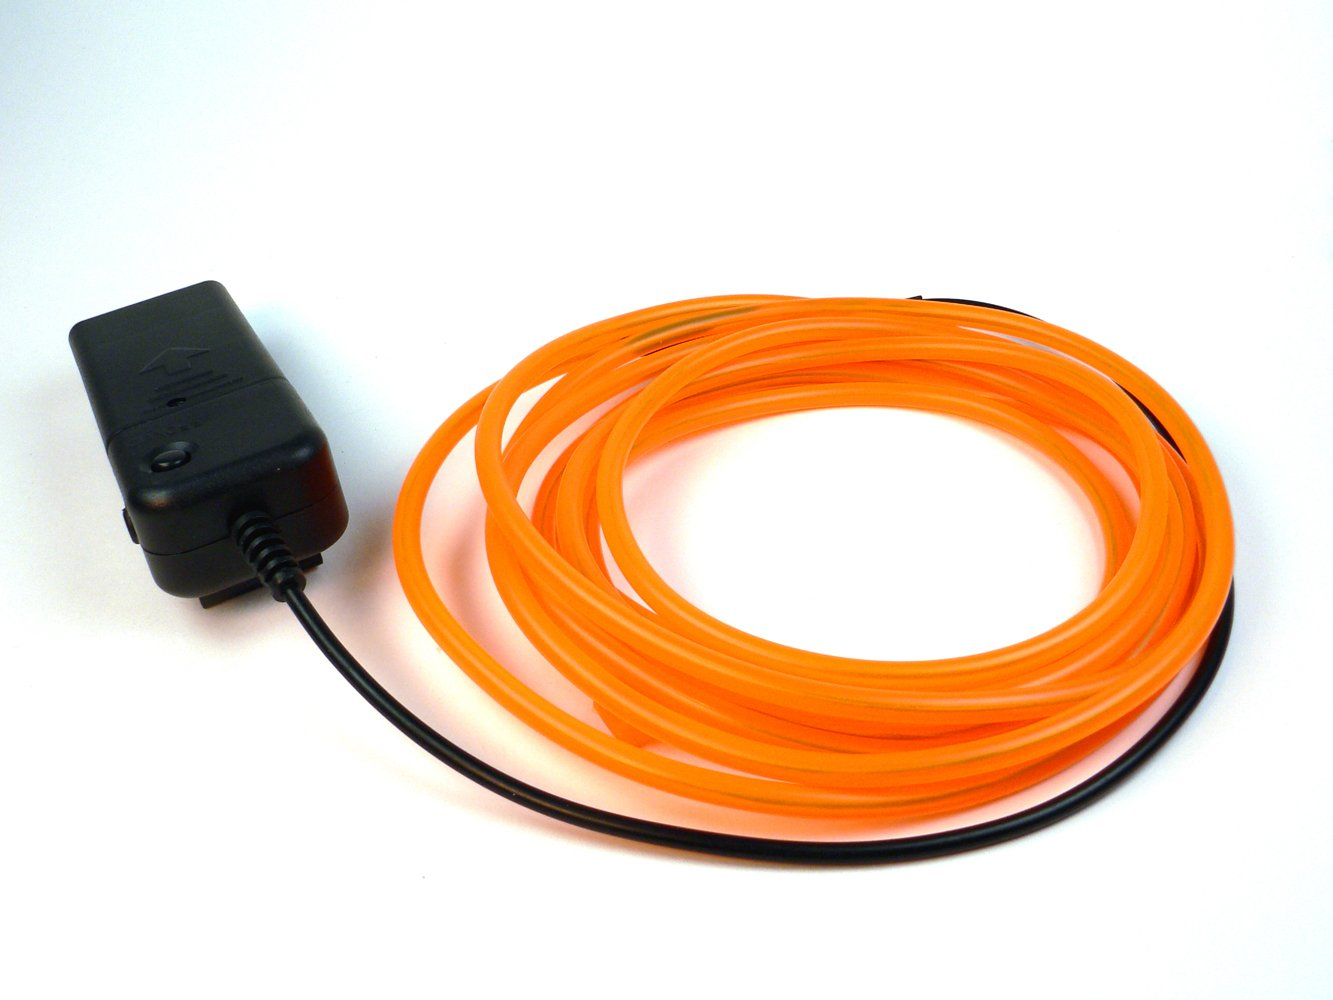 Fortune Products ELFW-3.2-3O Electroluminescent Flash Wire, 3.2mm Diameter x 3 yd Length, Orange